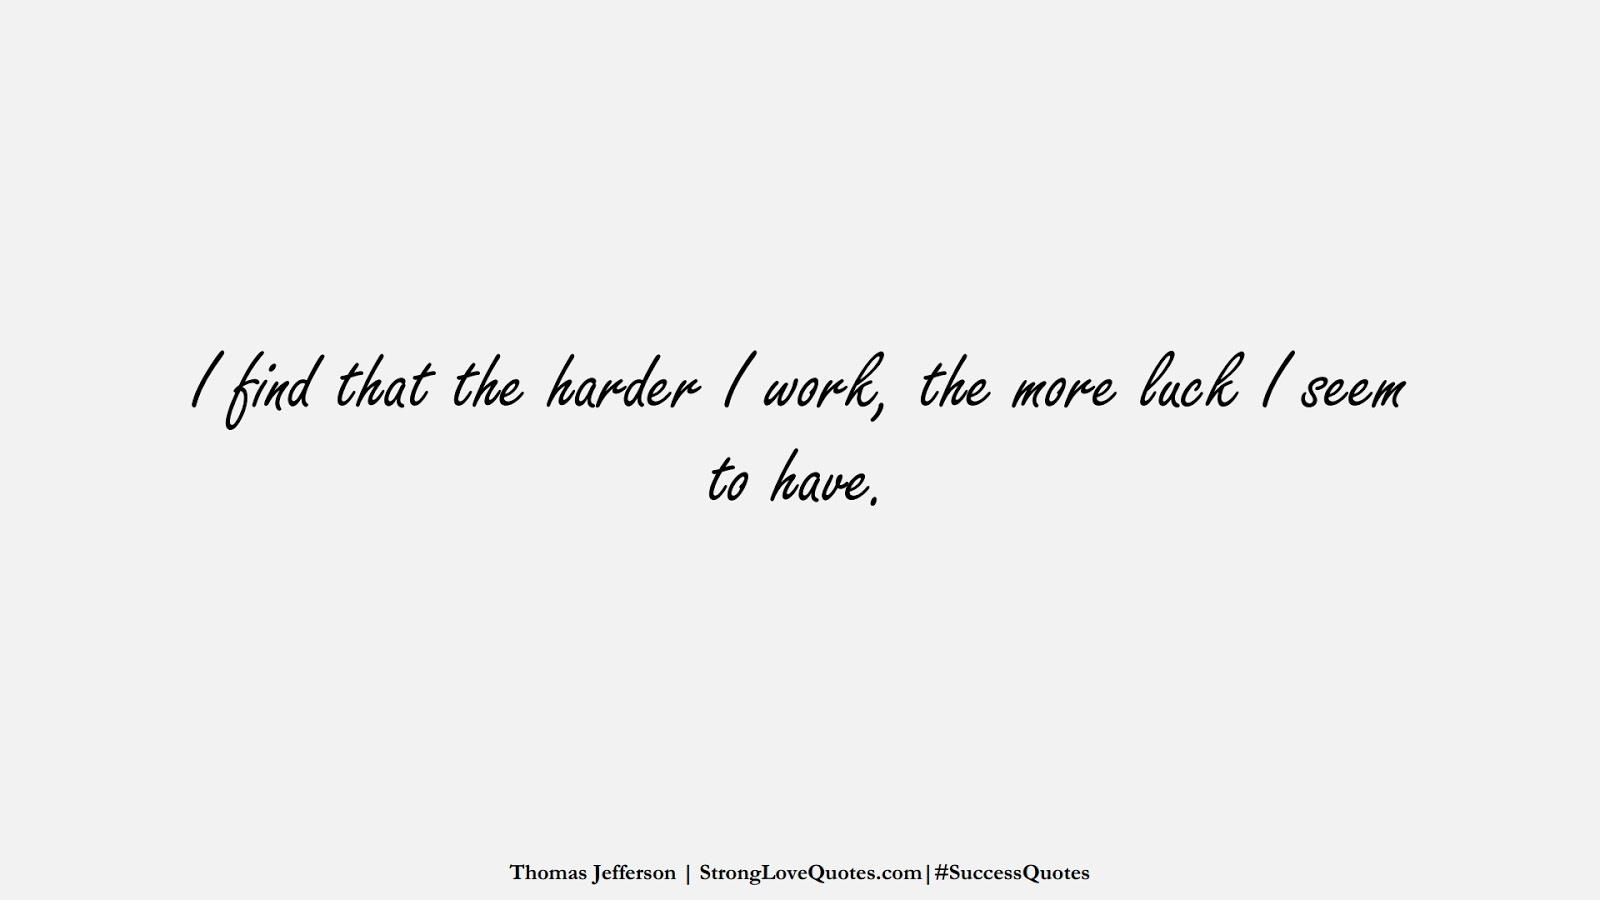 I find that the harder I work, the more luck I seem to have. (Thomas Jefferson);  #SuccessQuotes